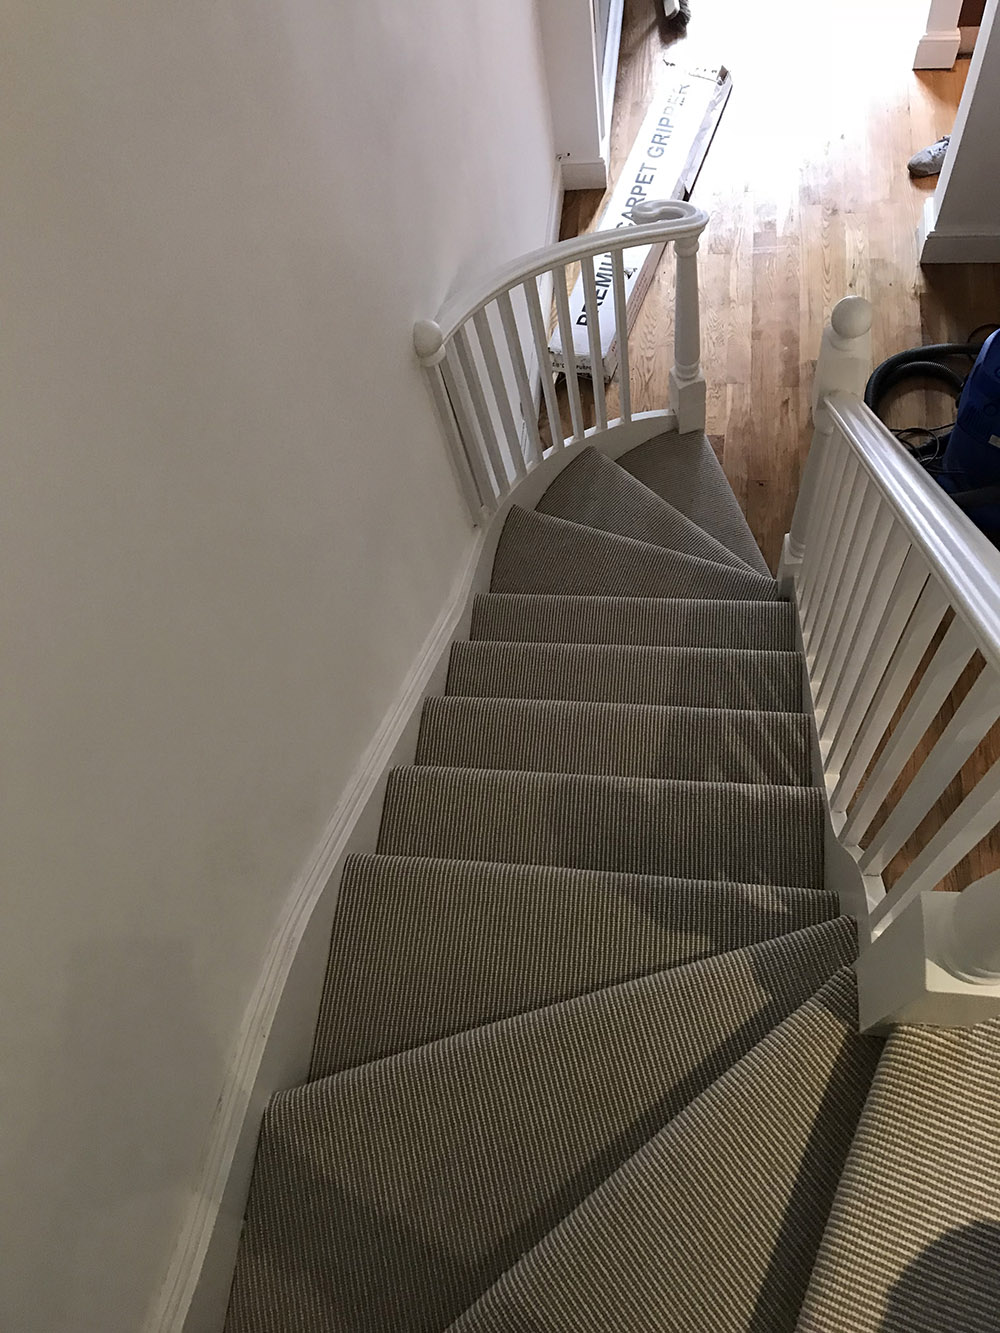 CORDED STAIRS INSTALLATION (9)